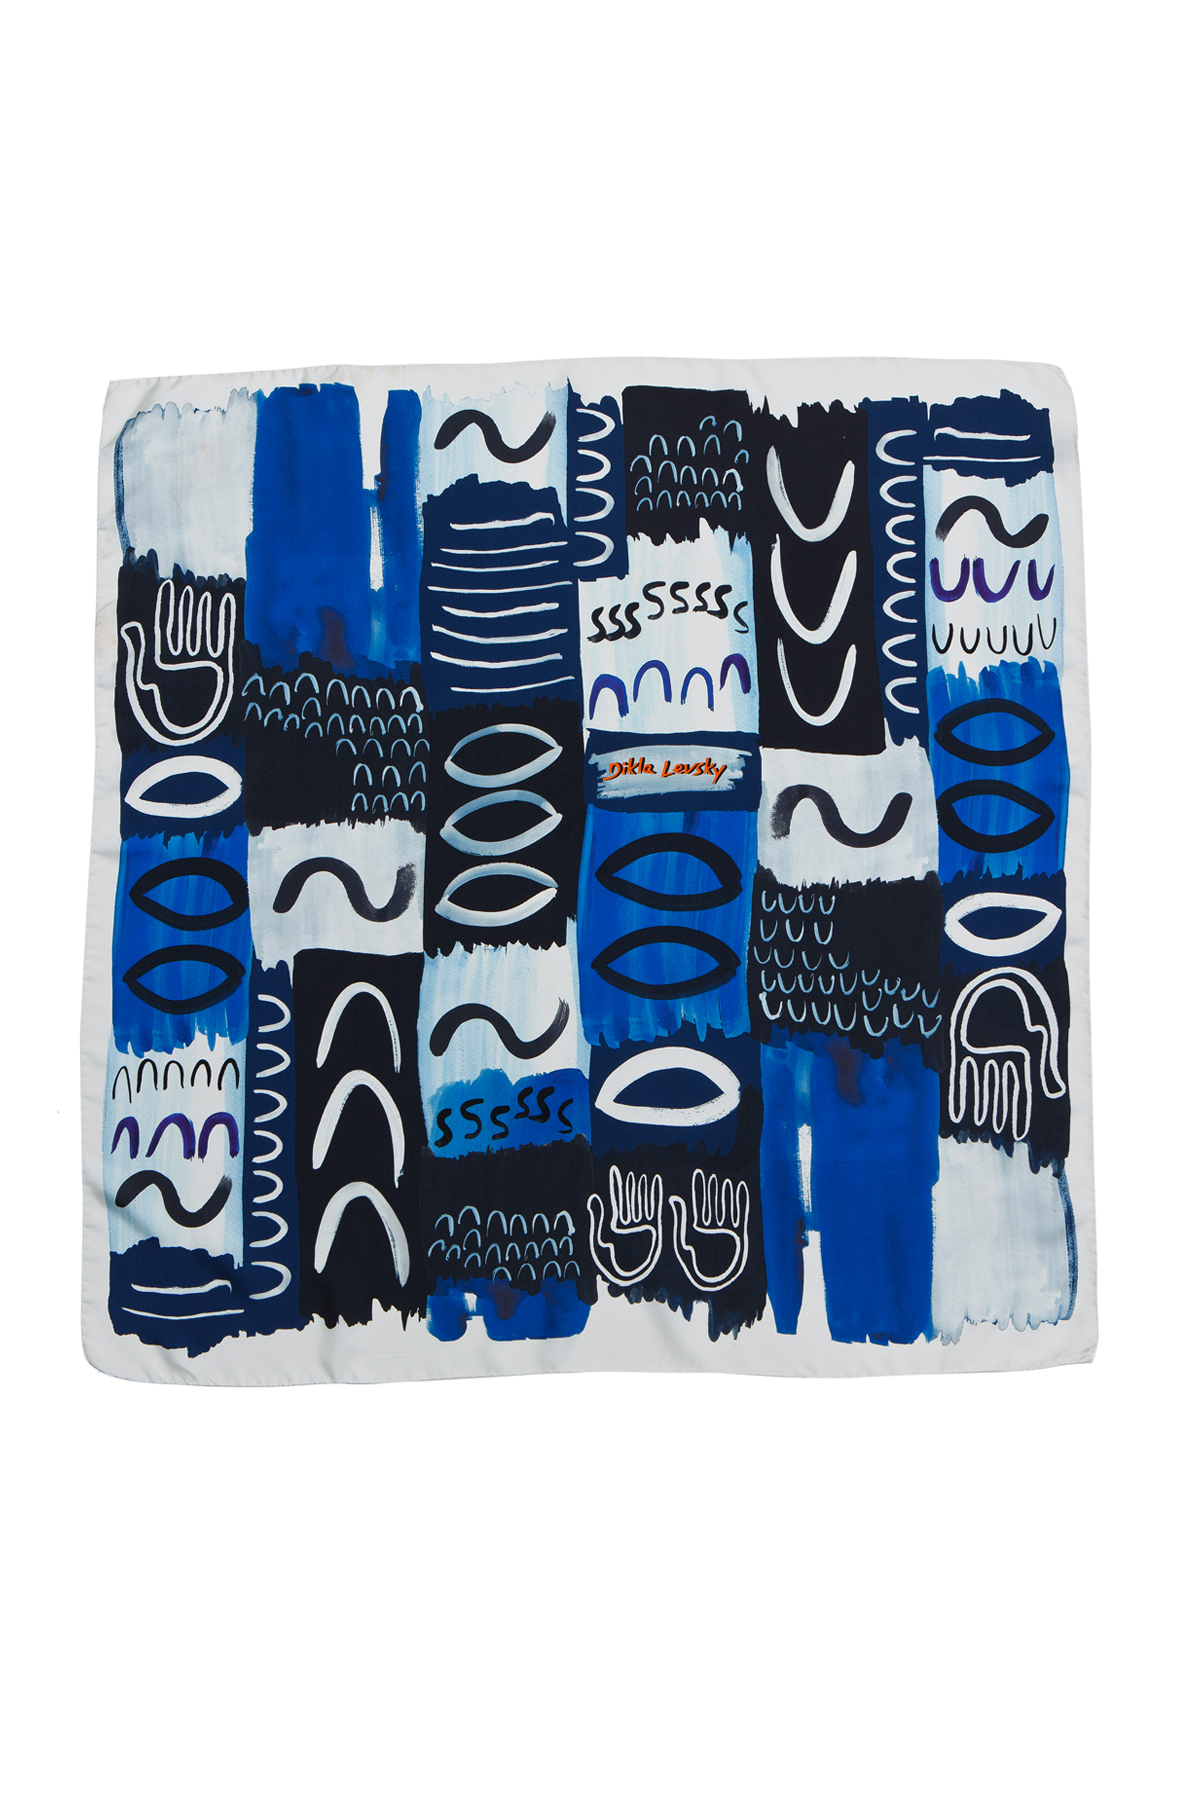 blue, black and white silk luxury scarf, made in italy